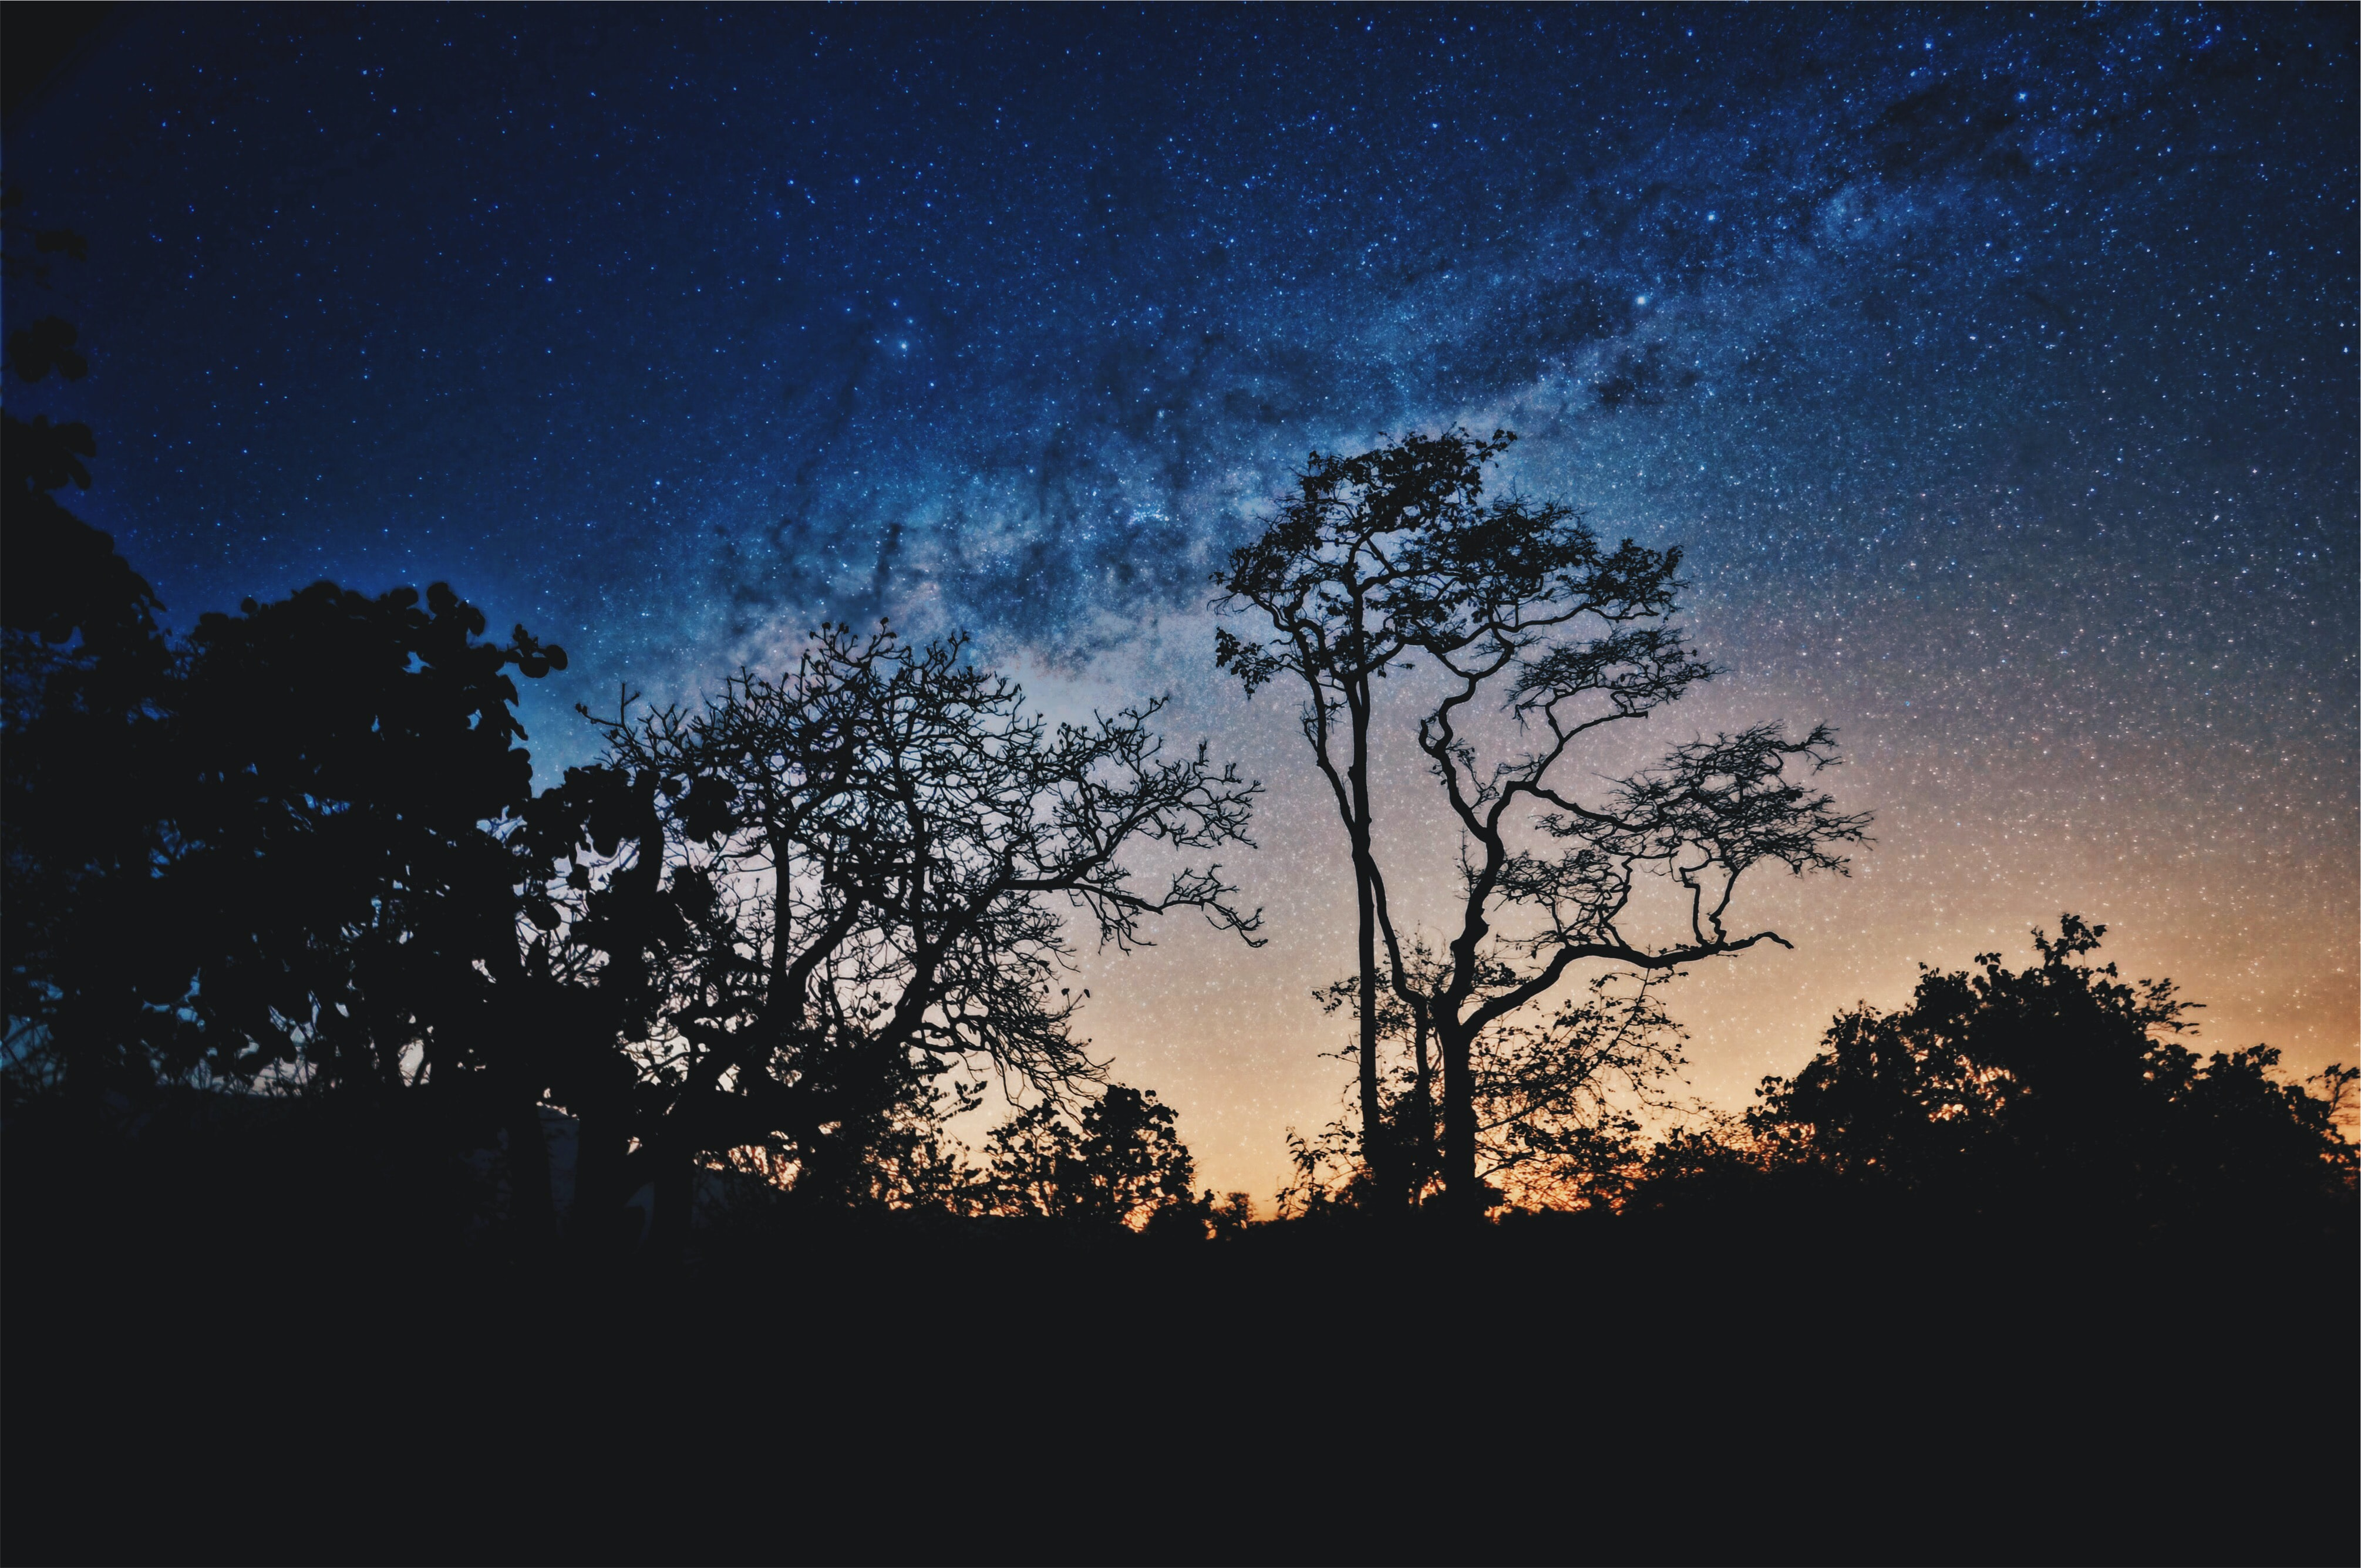 Colorful starry sky over silhouettes of trees